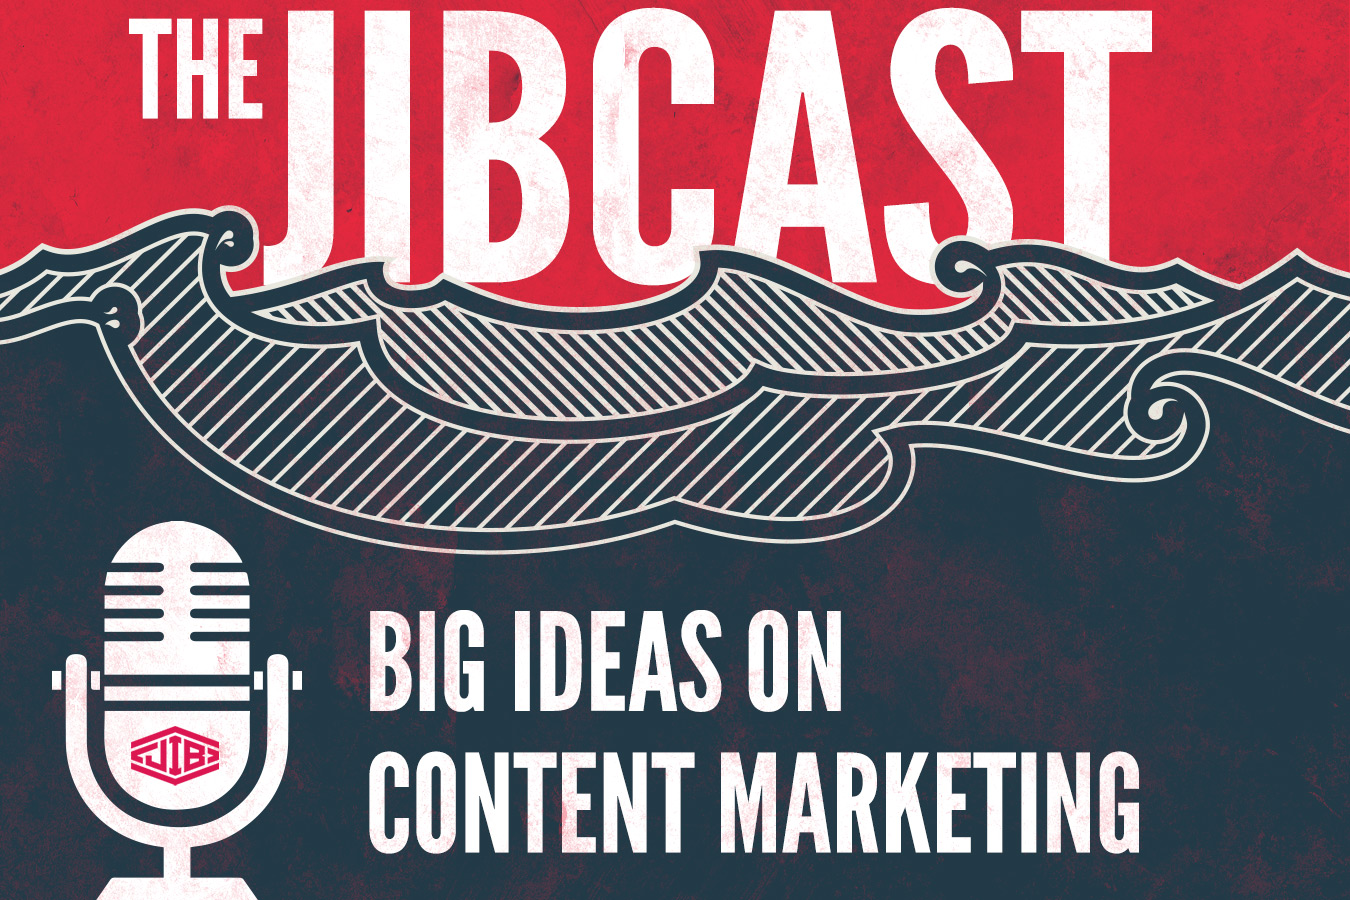 jibcast Episode 2 – Repurposing Your Content into A Book